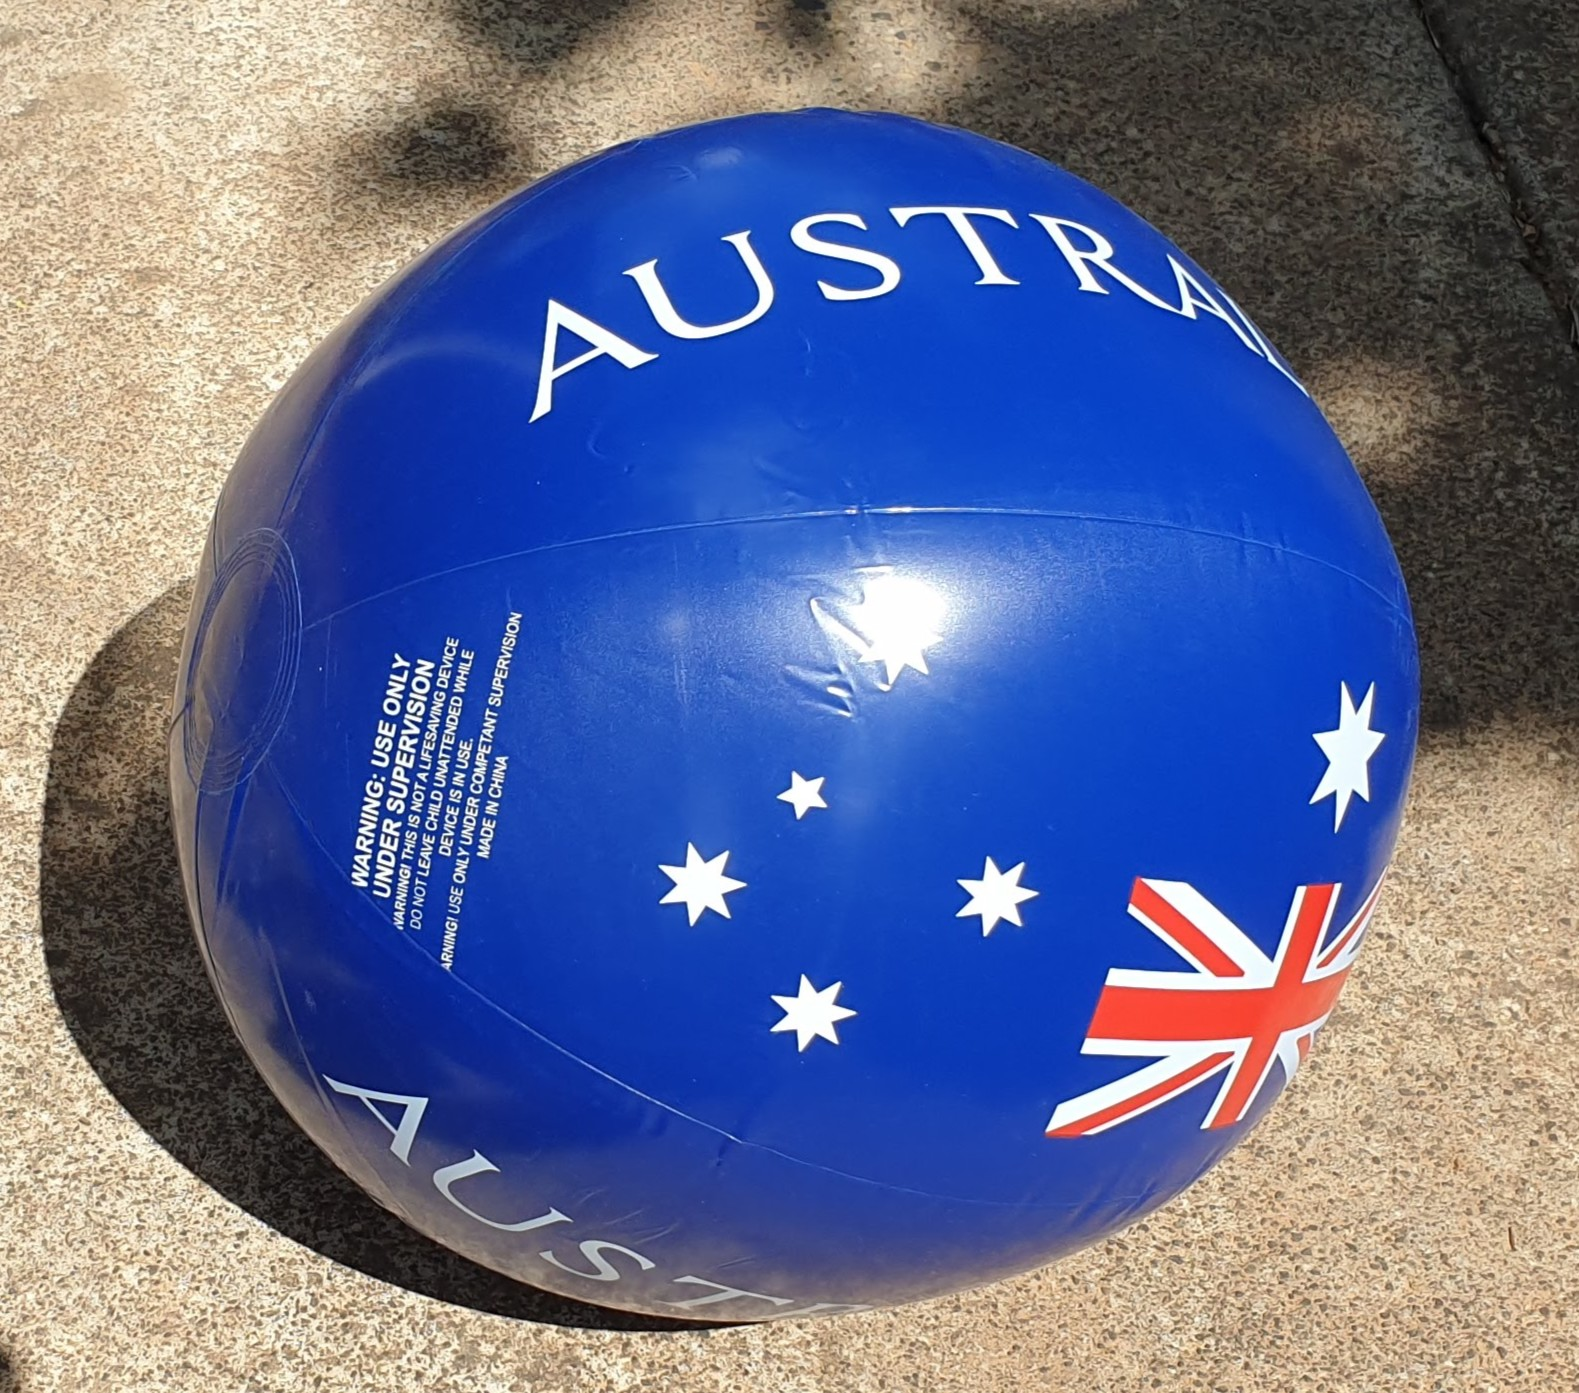 Australia Day beach ball